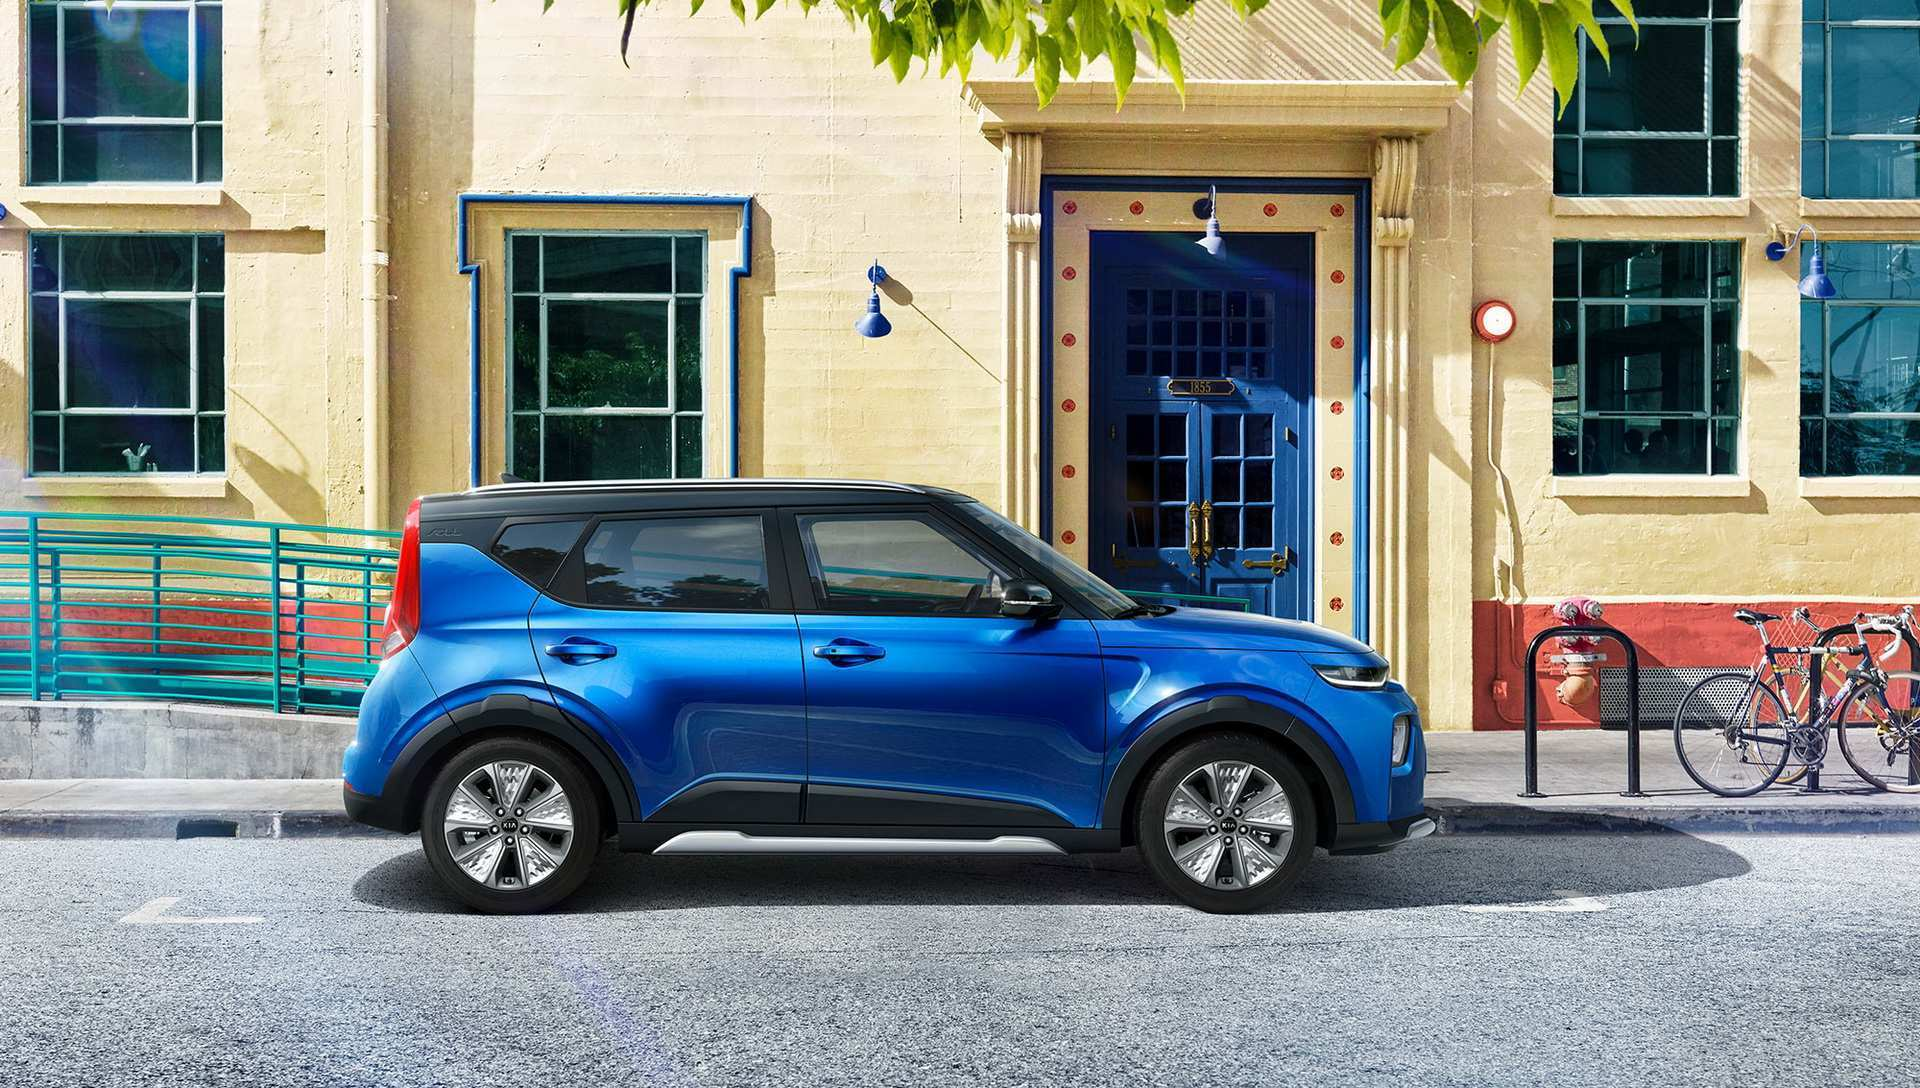 92 The Best 2020 Kia Soul Ev Availability Picture